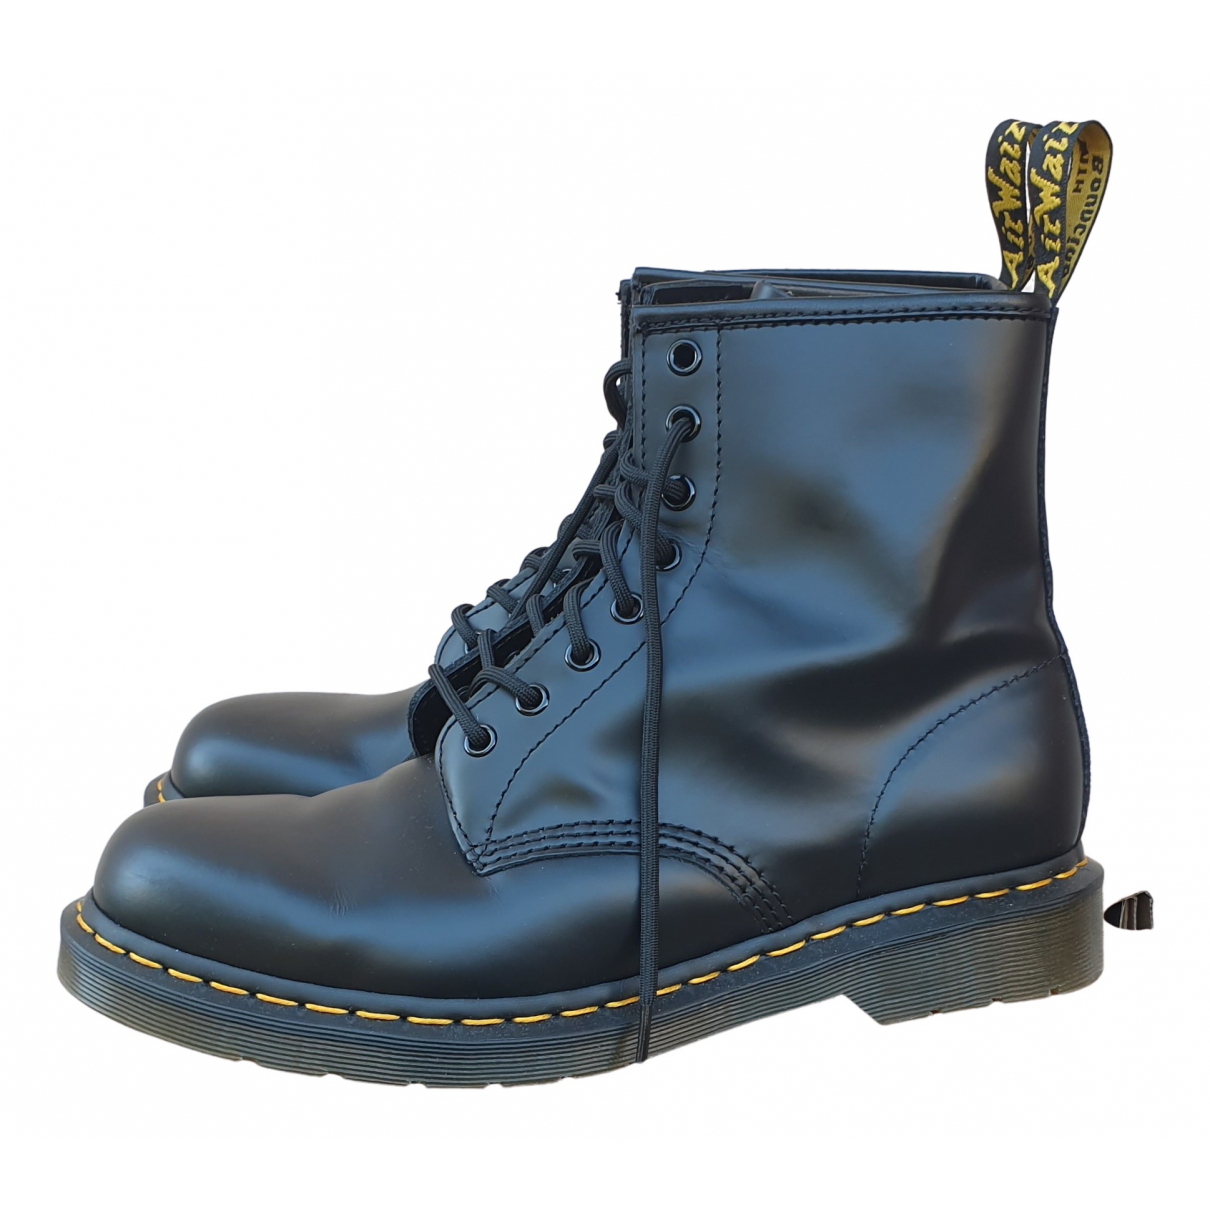 Dr. Martens 1460 Pascal (8 eye) Black Leather Boots for Men 44 EU